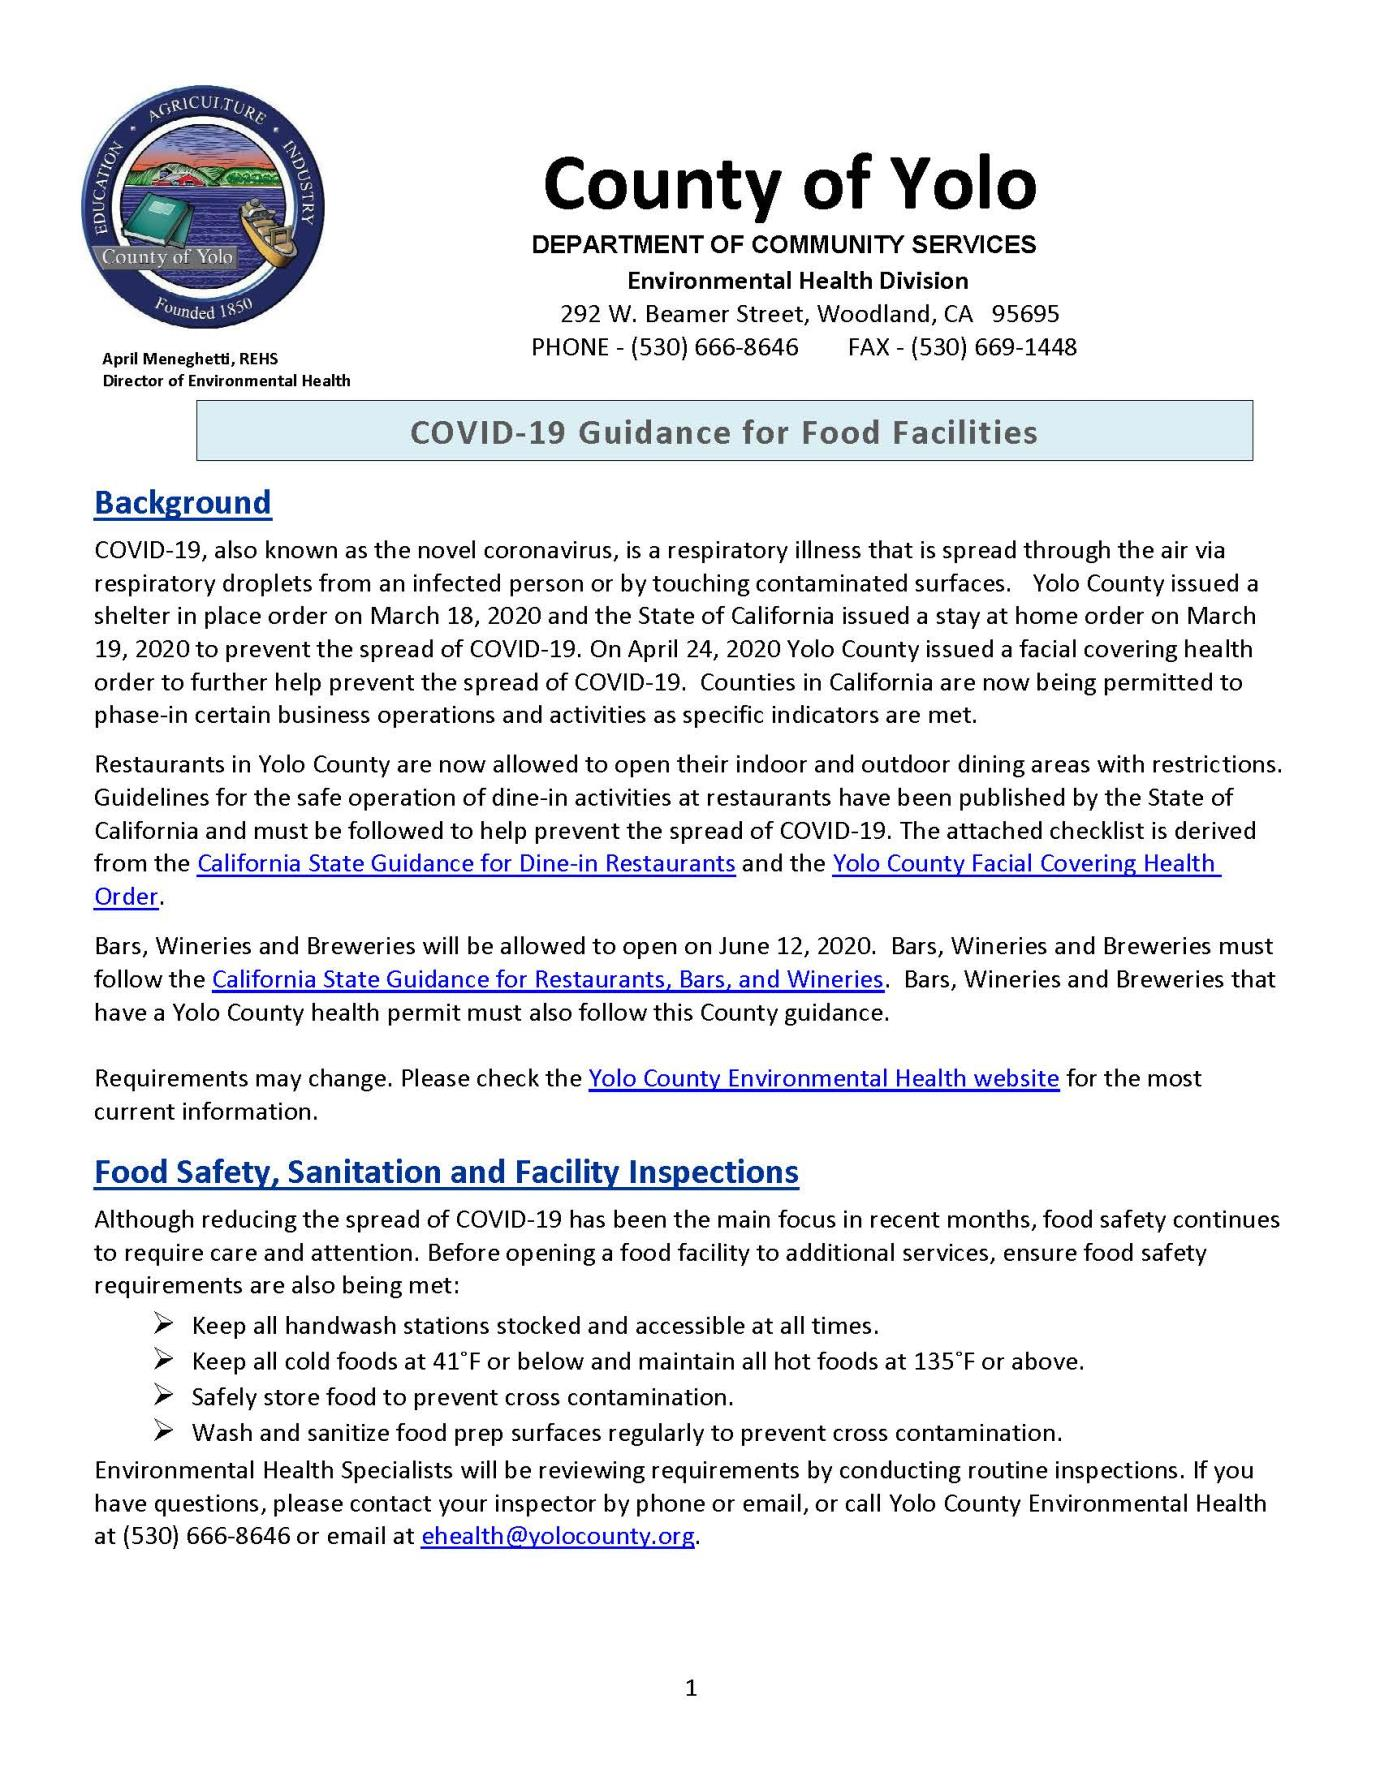 COVID-19 Guidance for Food Facilities 6-9-20